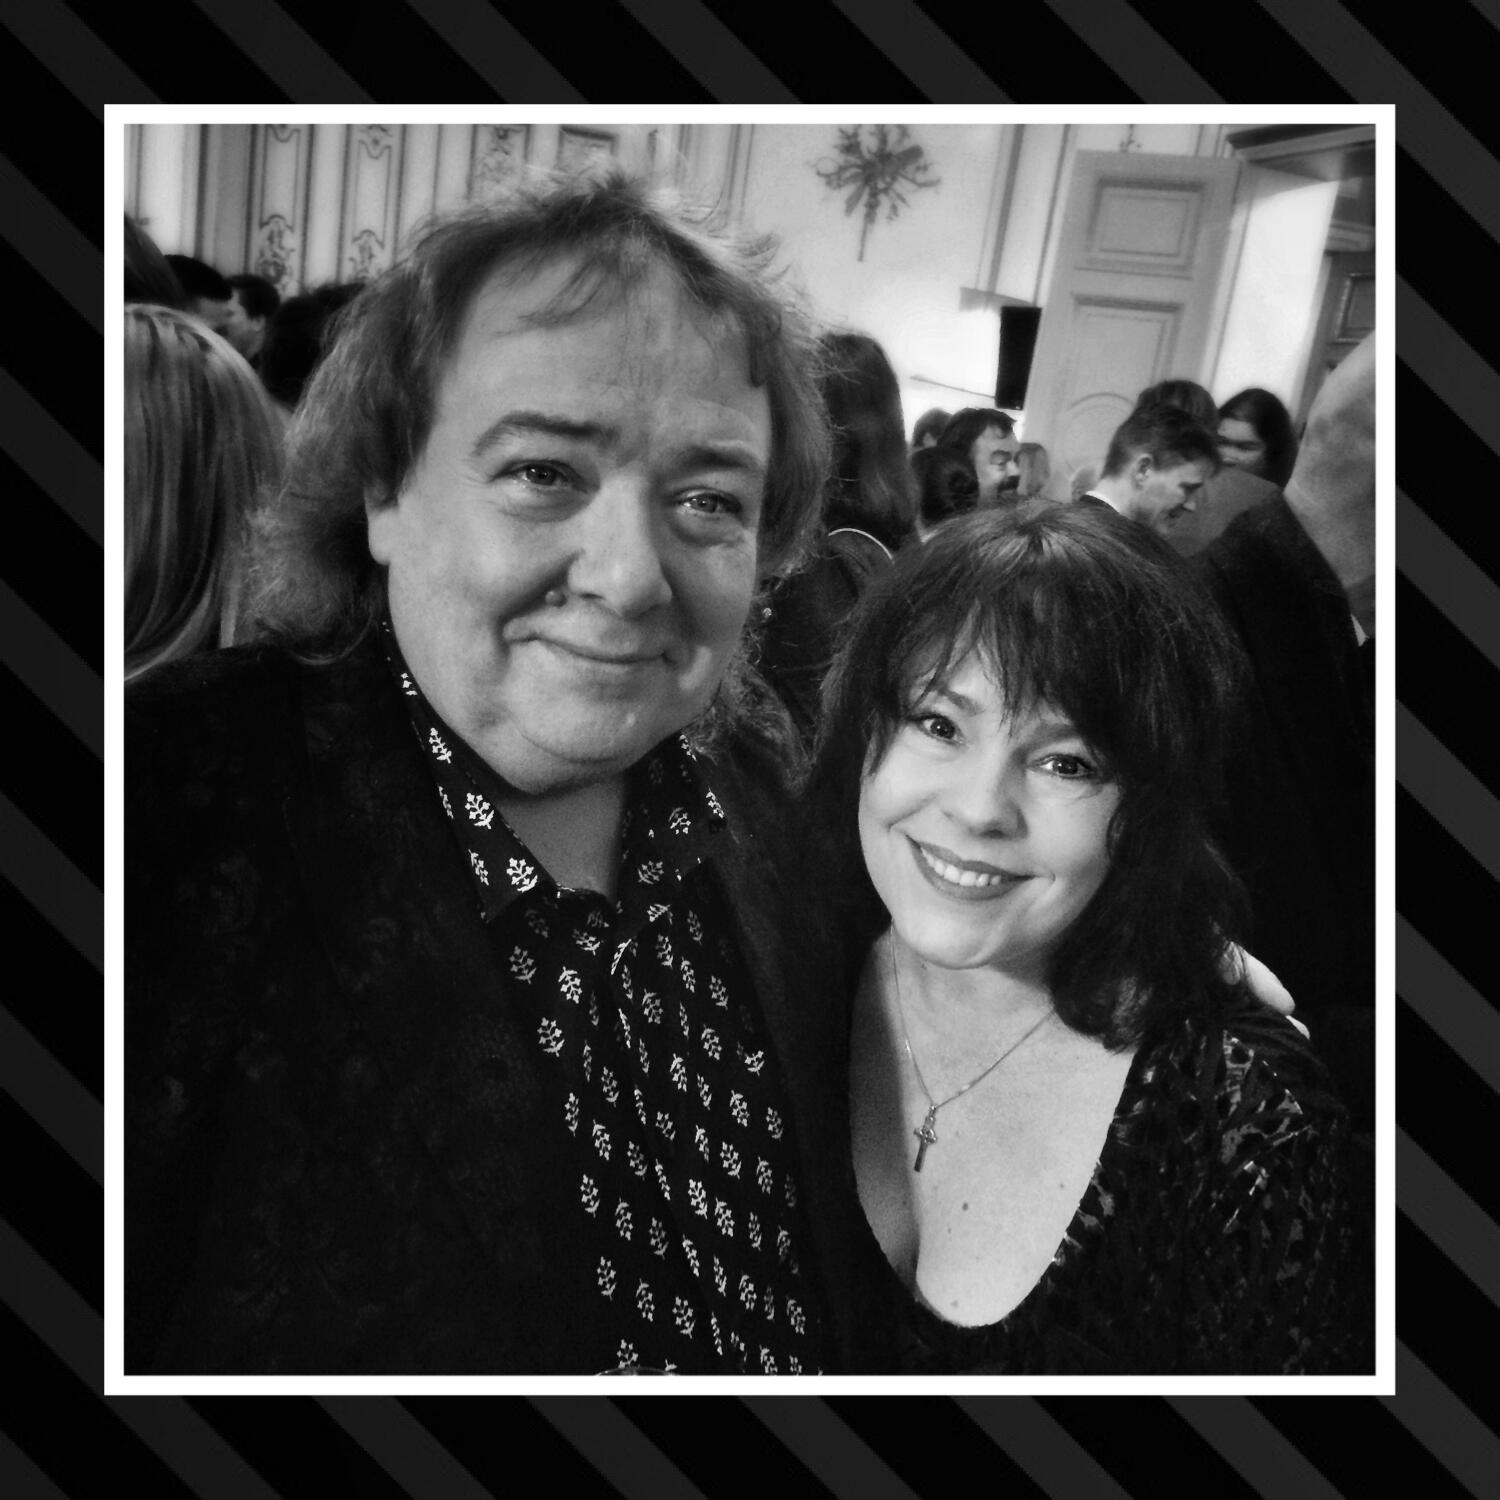 57: The one with Whitesnake's Bernie Marsden